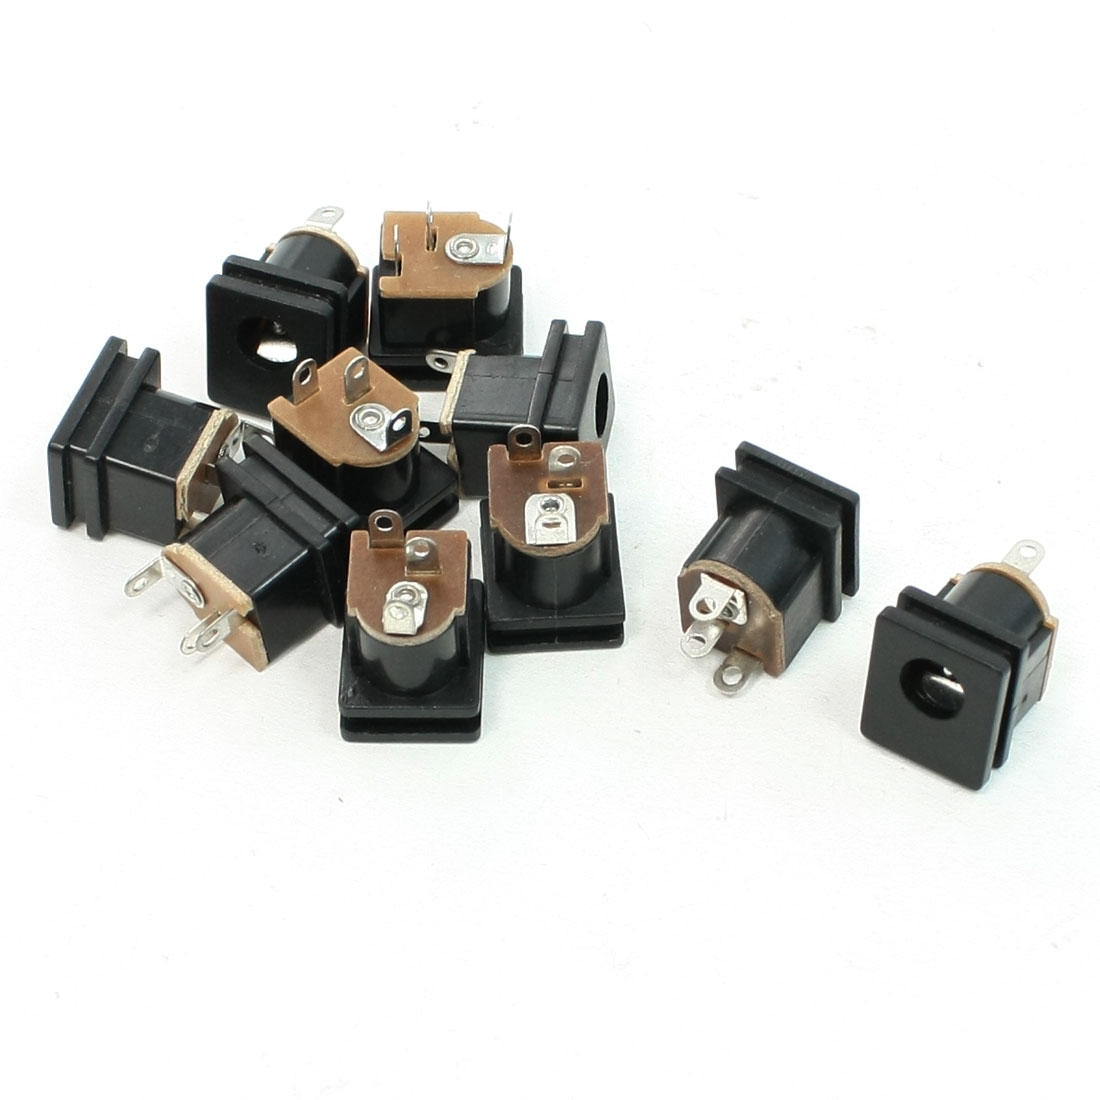 2.5mm Central Pin DC Power Jack Socket Replacement 9 Pcs